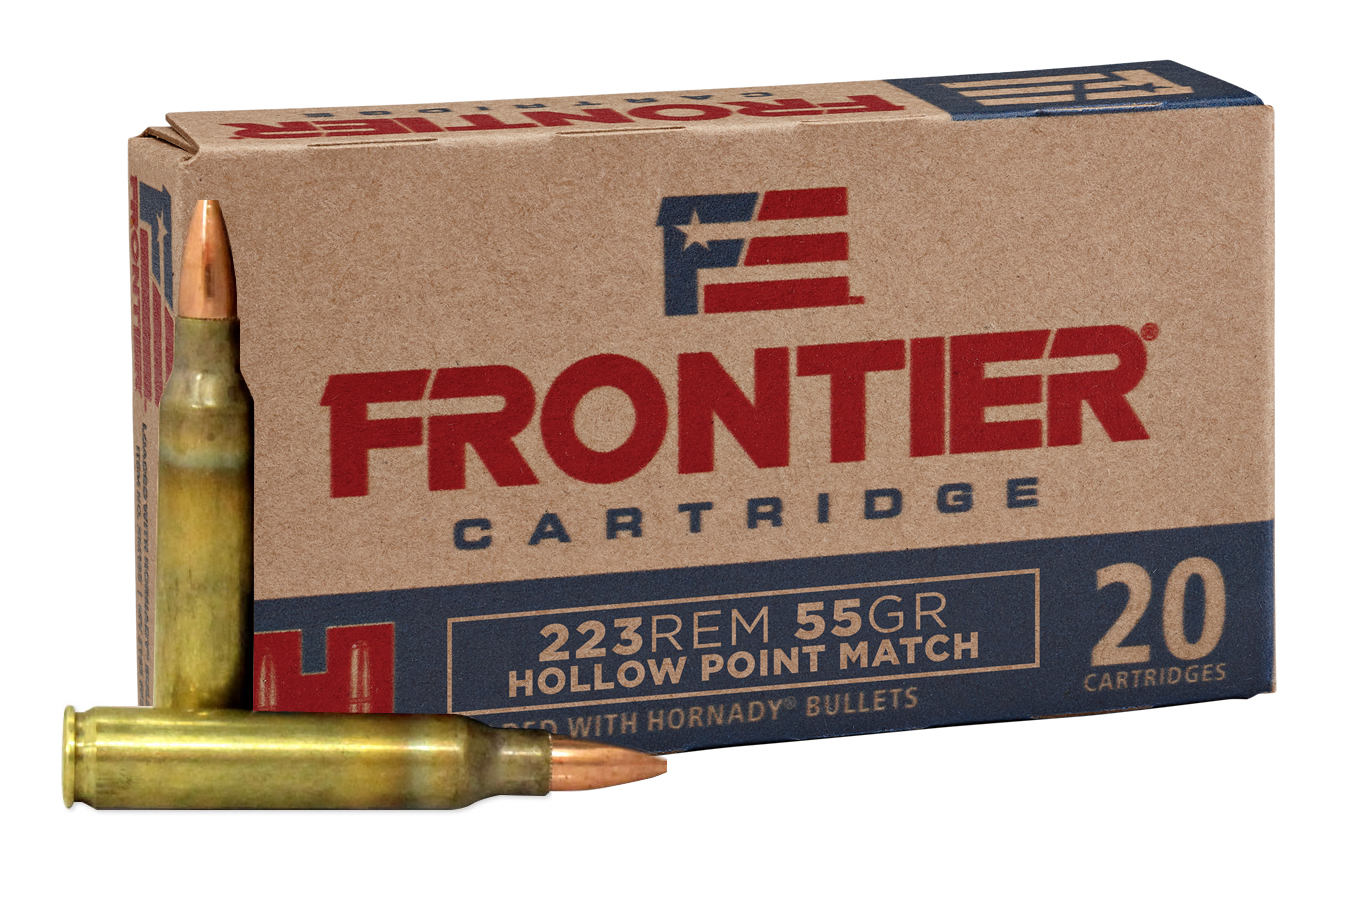 223 REM 55 GR HOLLOW POINT MATCH FRONTIER